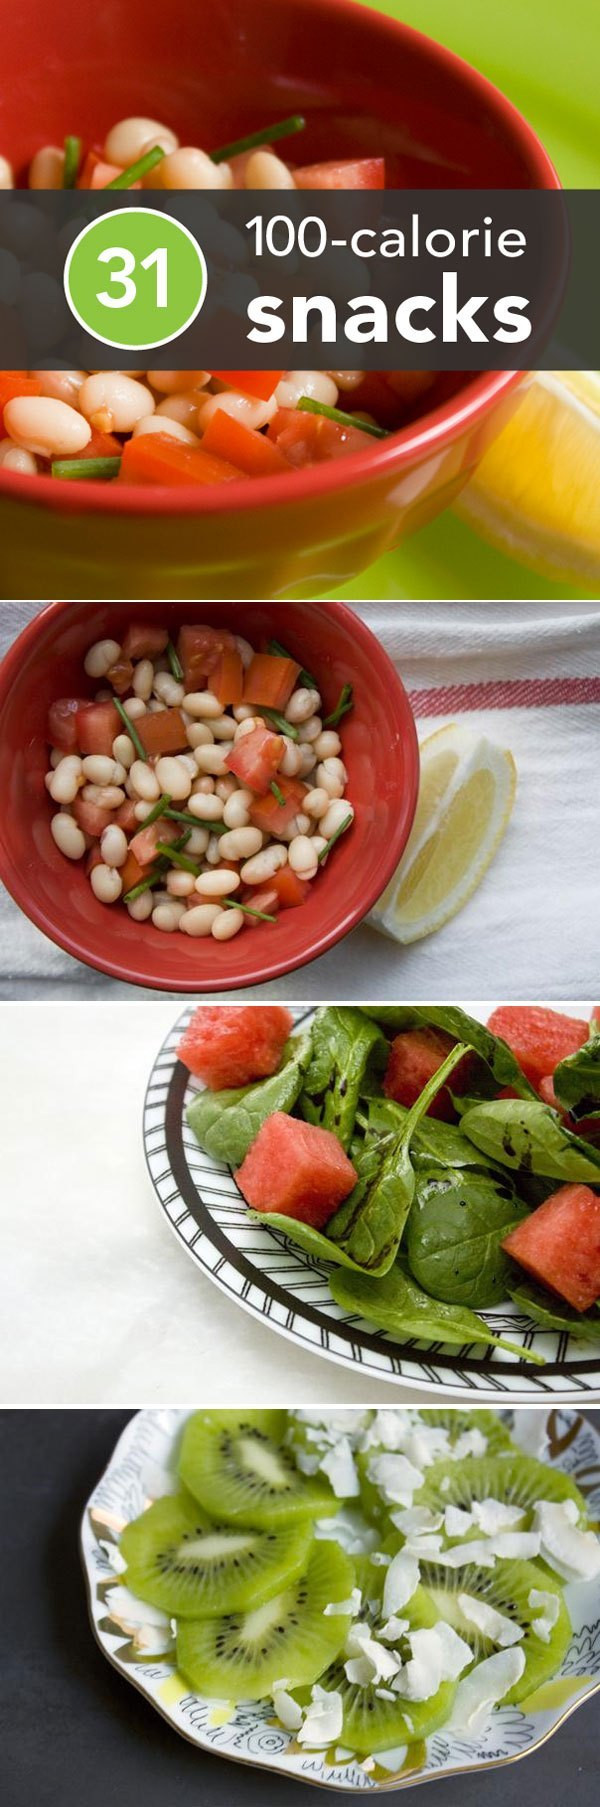 Healthy 100 Calorie Snacks  31 Healthy 100 Calorie Snacks Get Fit and Motivated